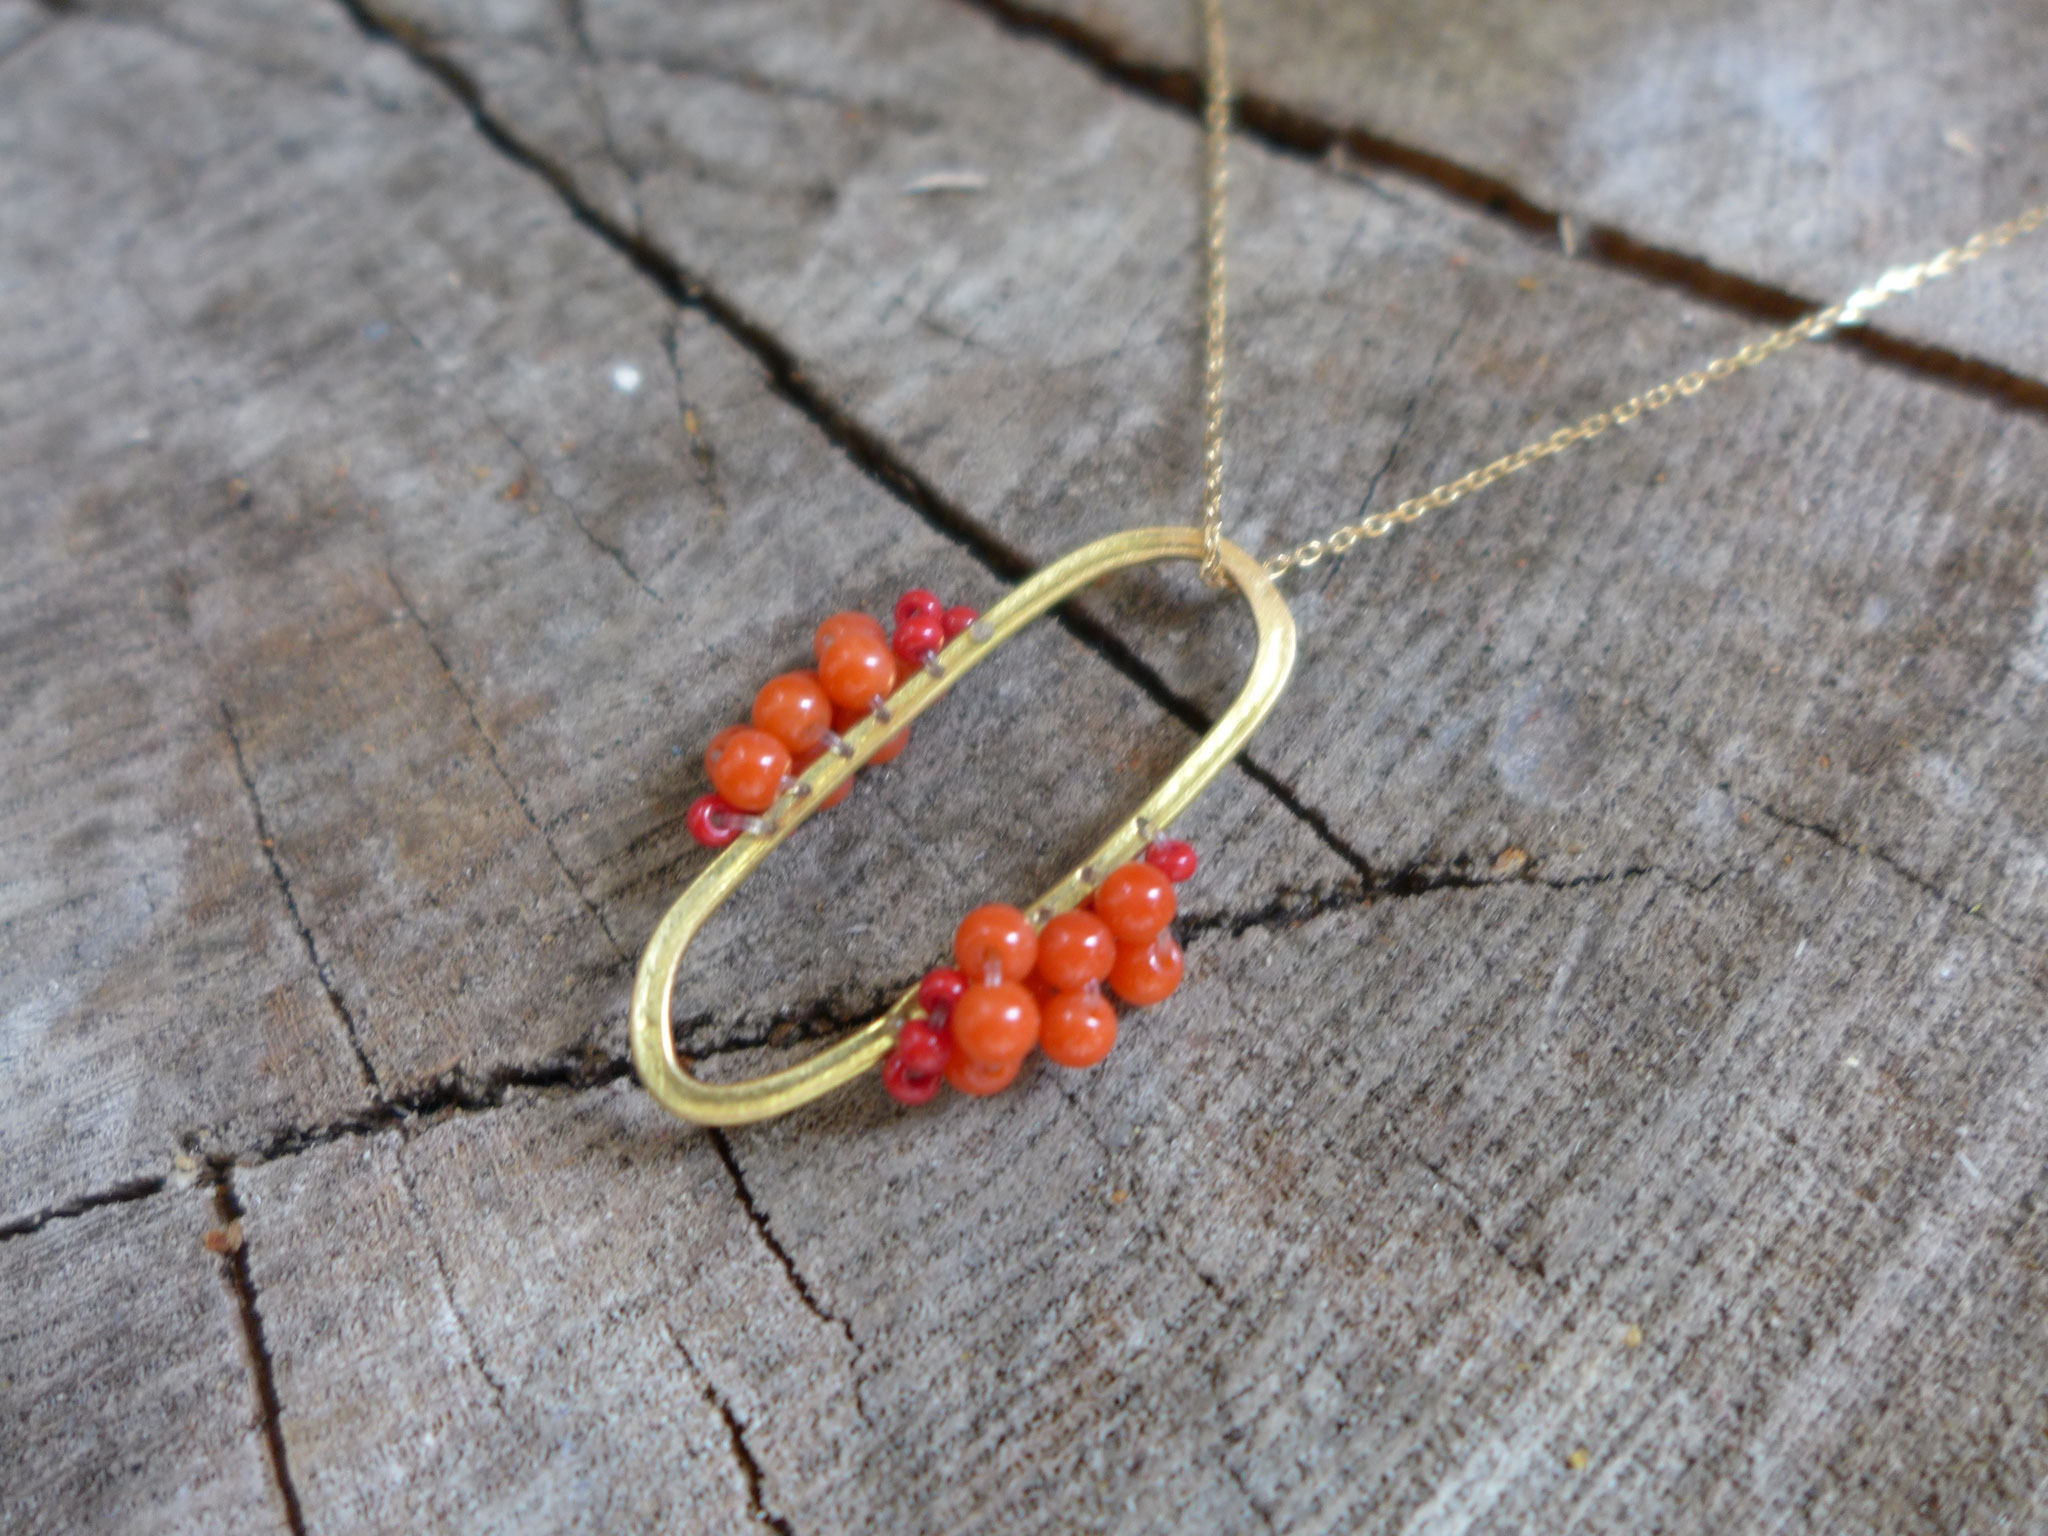 Pendant, 18 k yellow gold, coral and glass beads